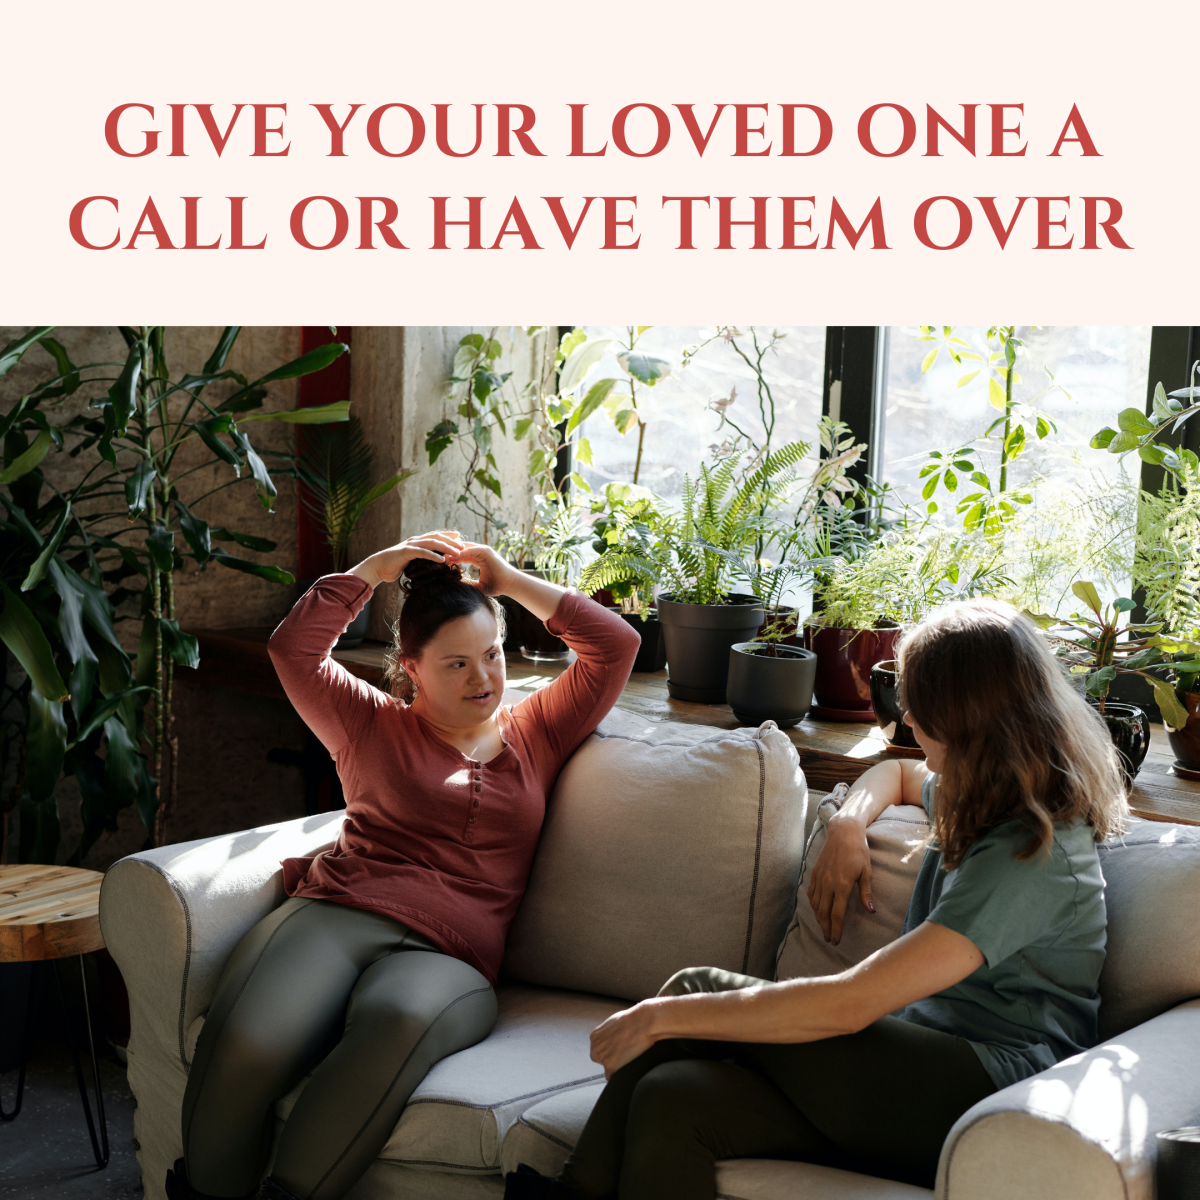 Don't put the burden on your grieving friend to reach out when they are feeling lonely.